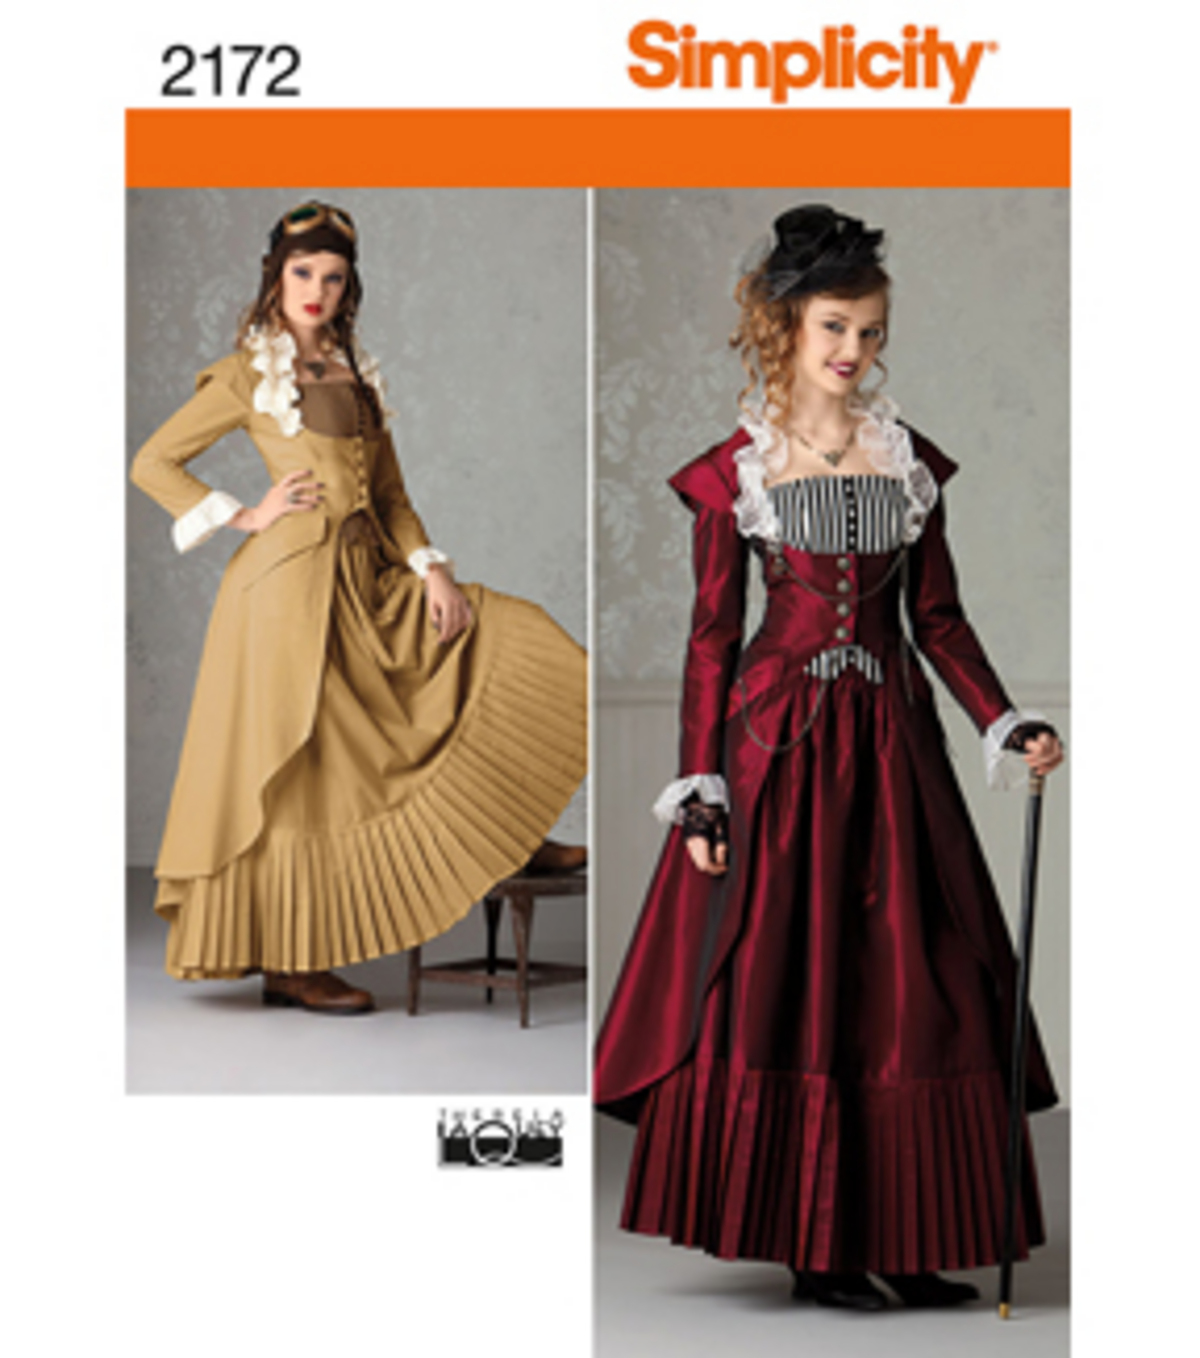 Simplicity Patterns Costumes New Design Inspiration